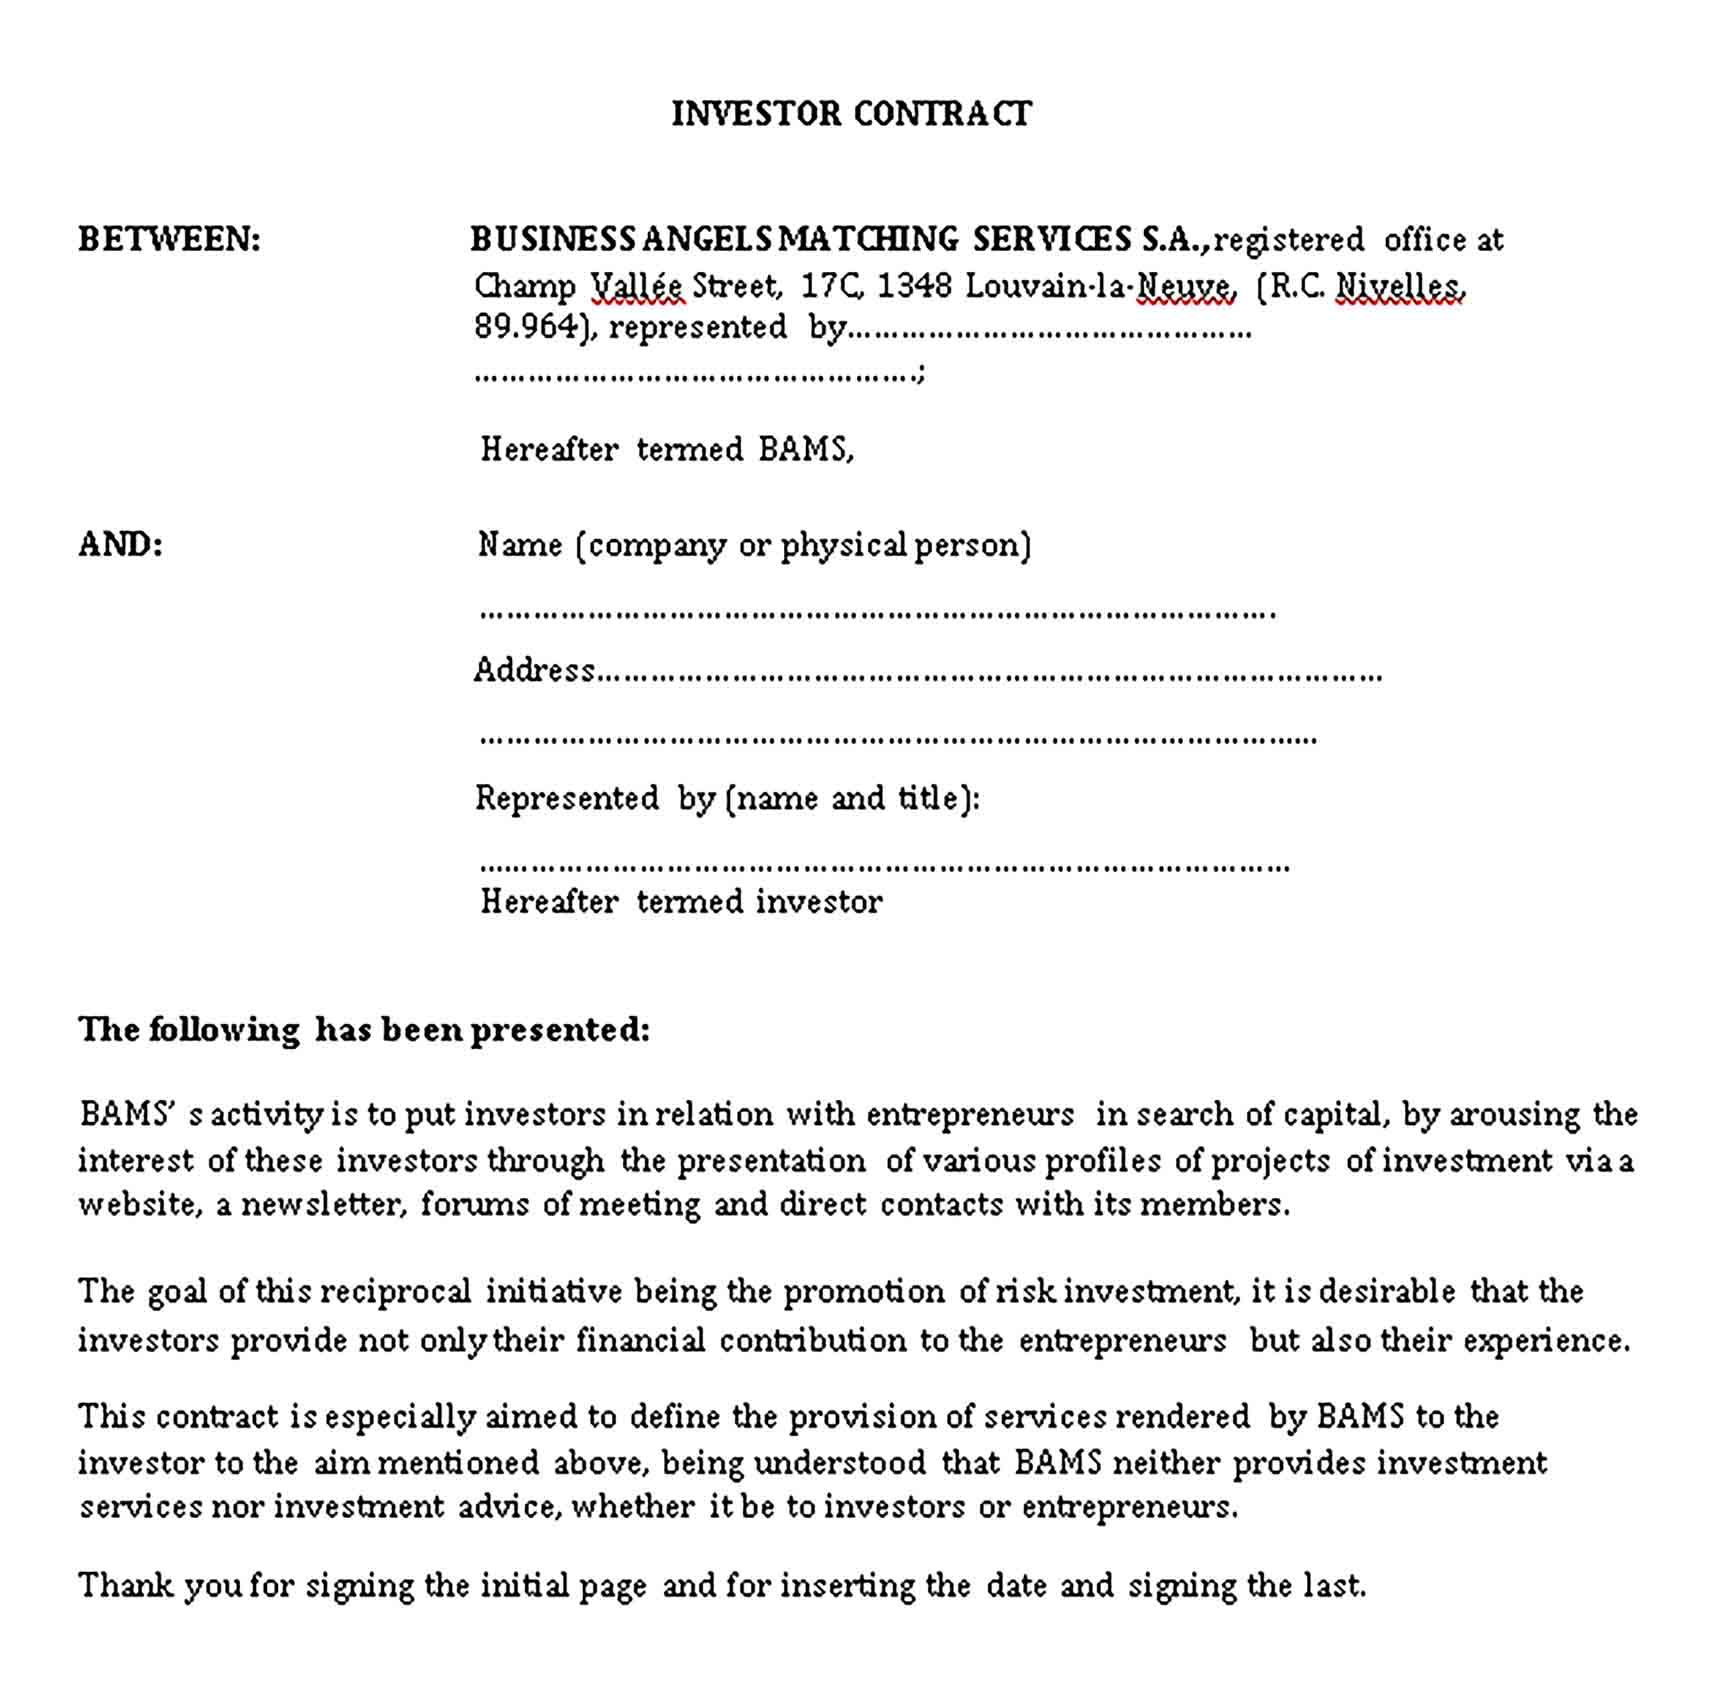 Sample Investment Agreement Template In 2021 Investing Contract Agreement Agreement